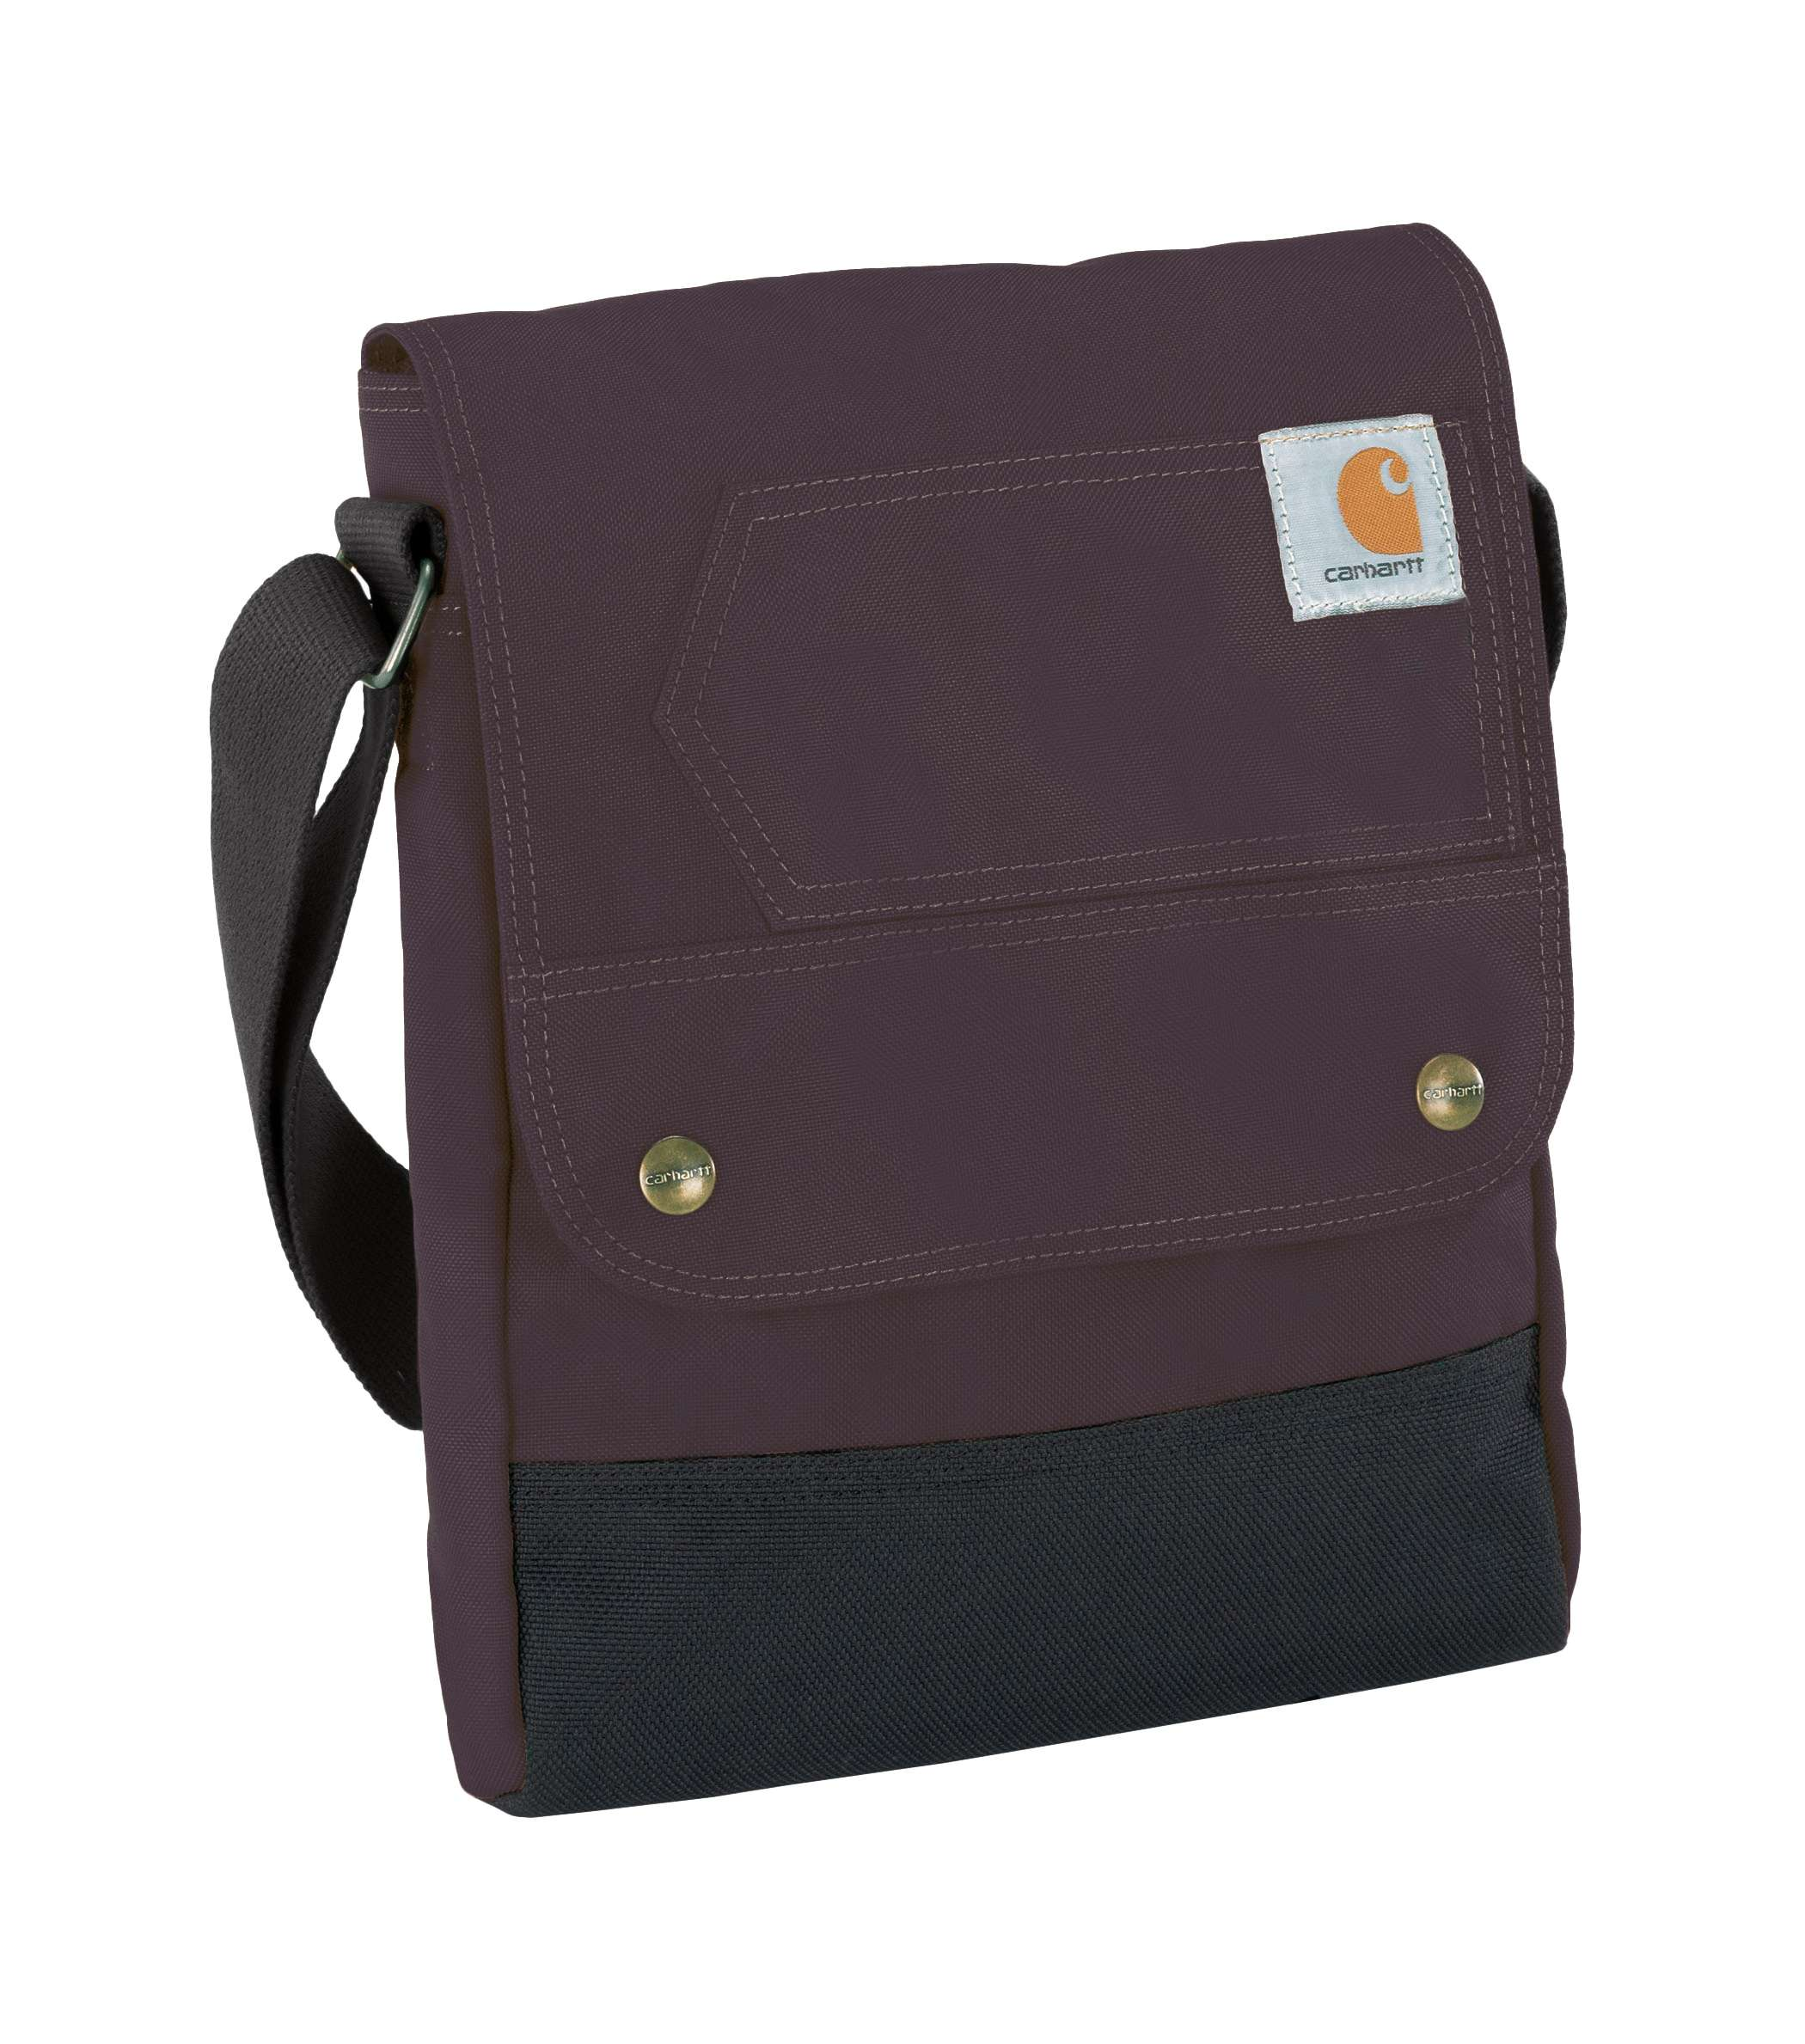 Carhartt Legacy Cross Body Bag